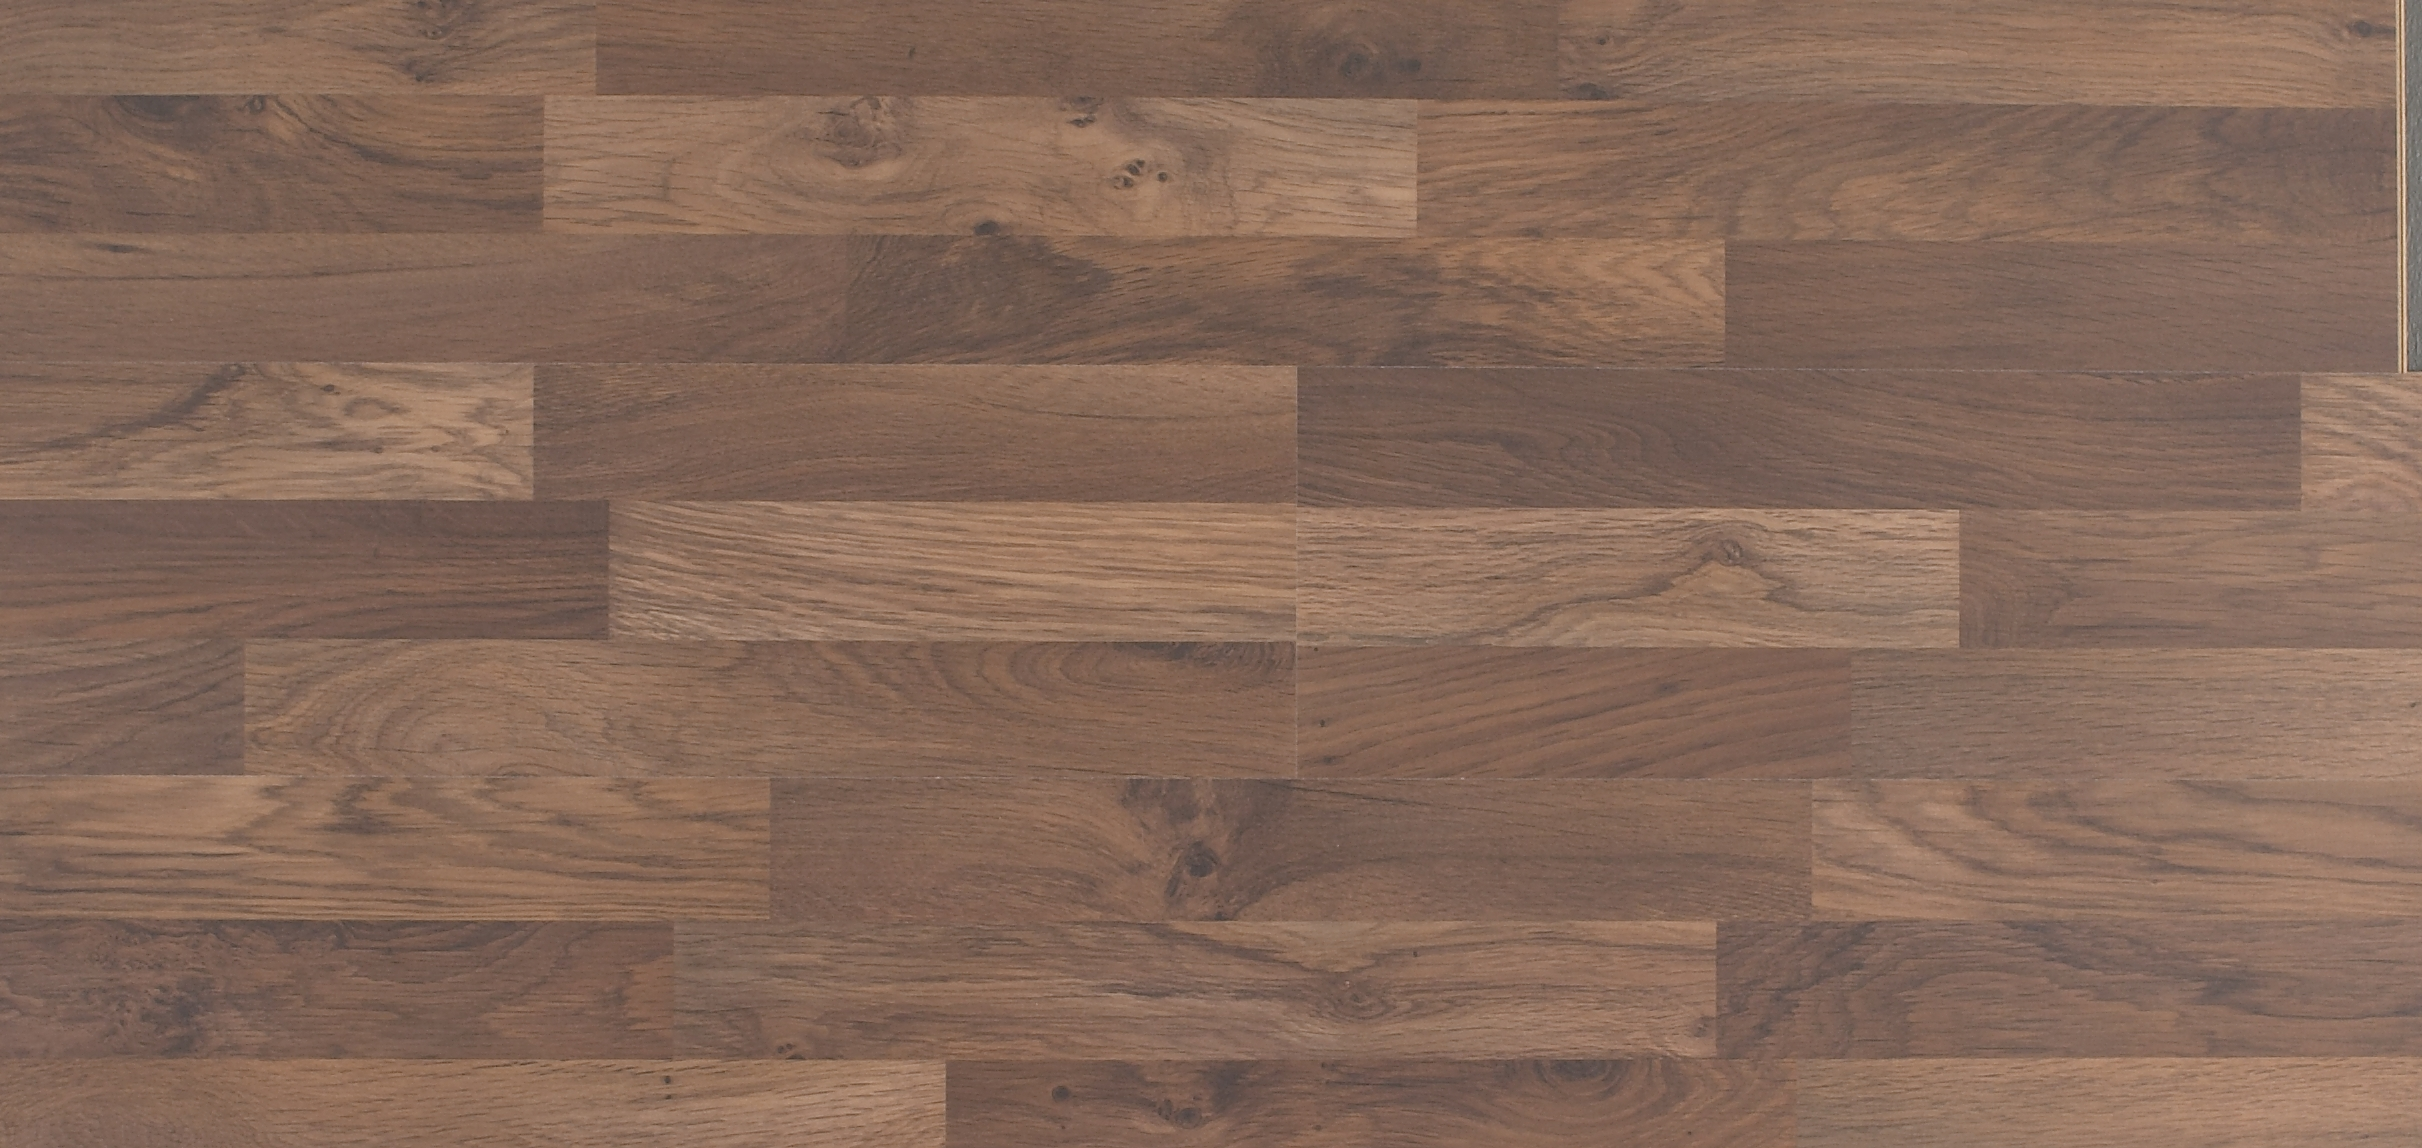 Tile textures wood crowdbuild for for Wooden floor tiles